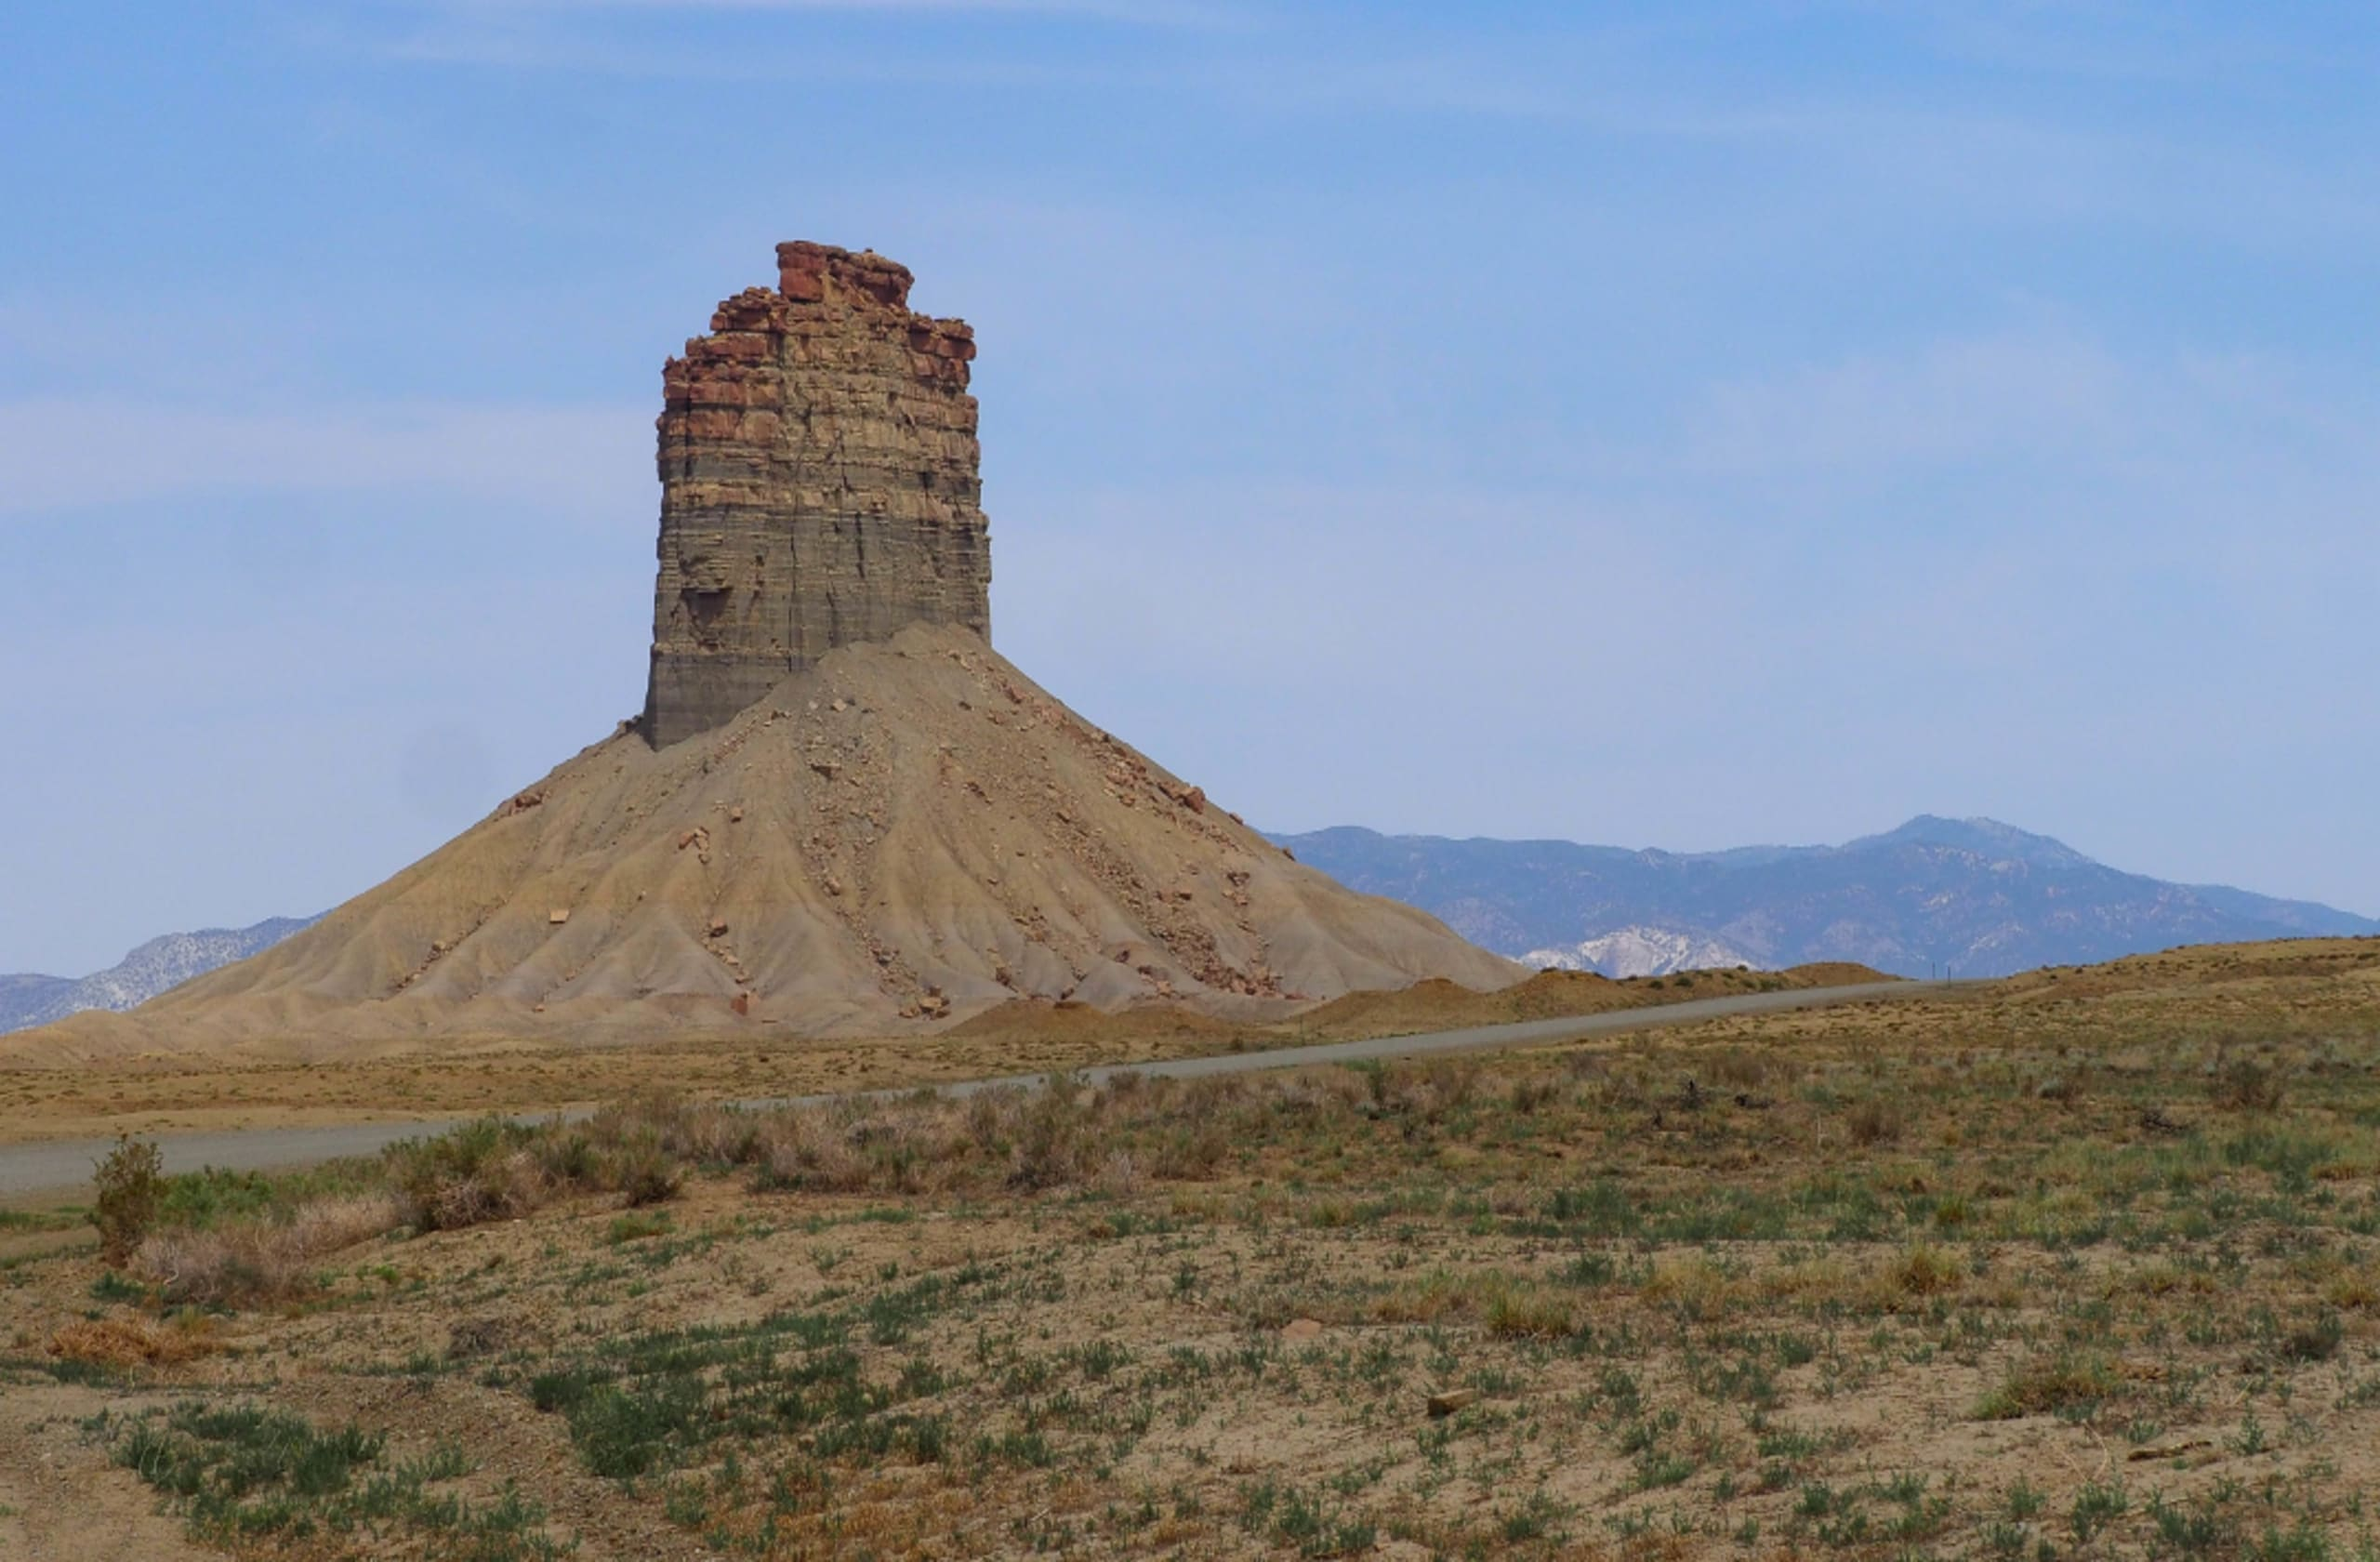 Ten top things to do in Mesa Verde Country of southwestern Colorado